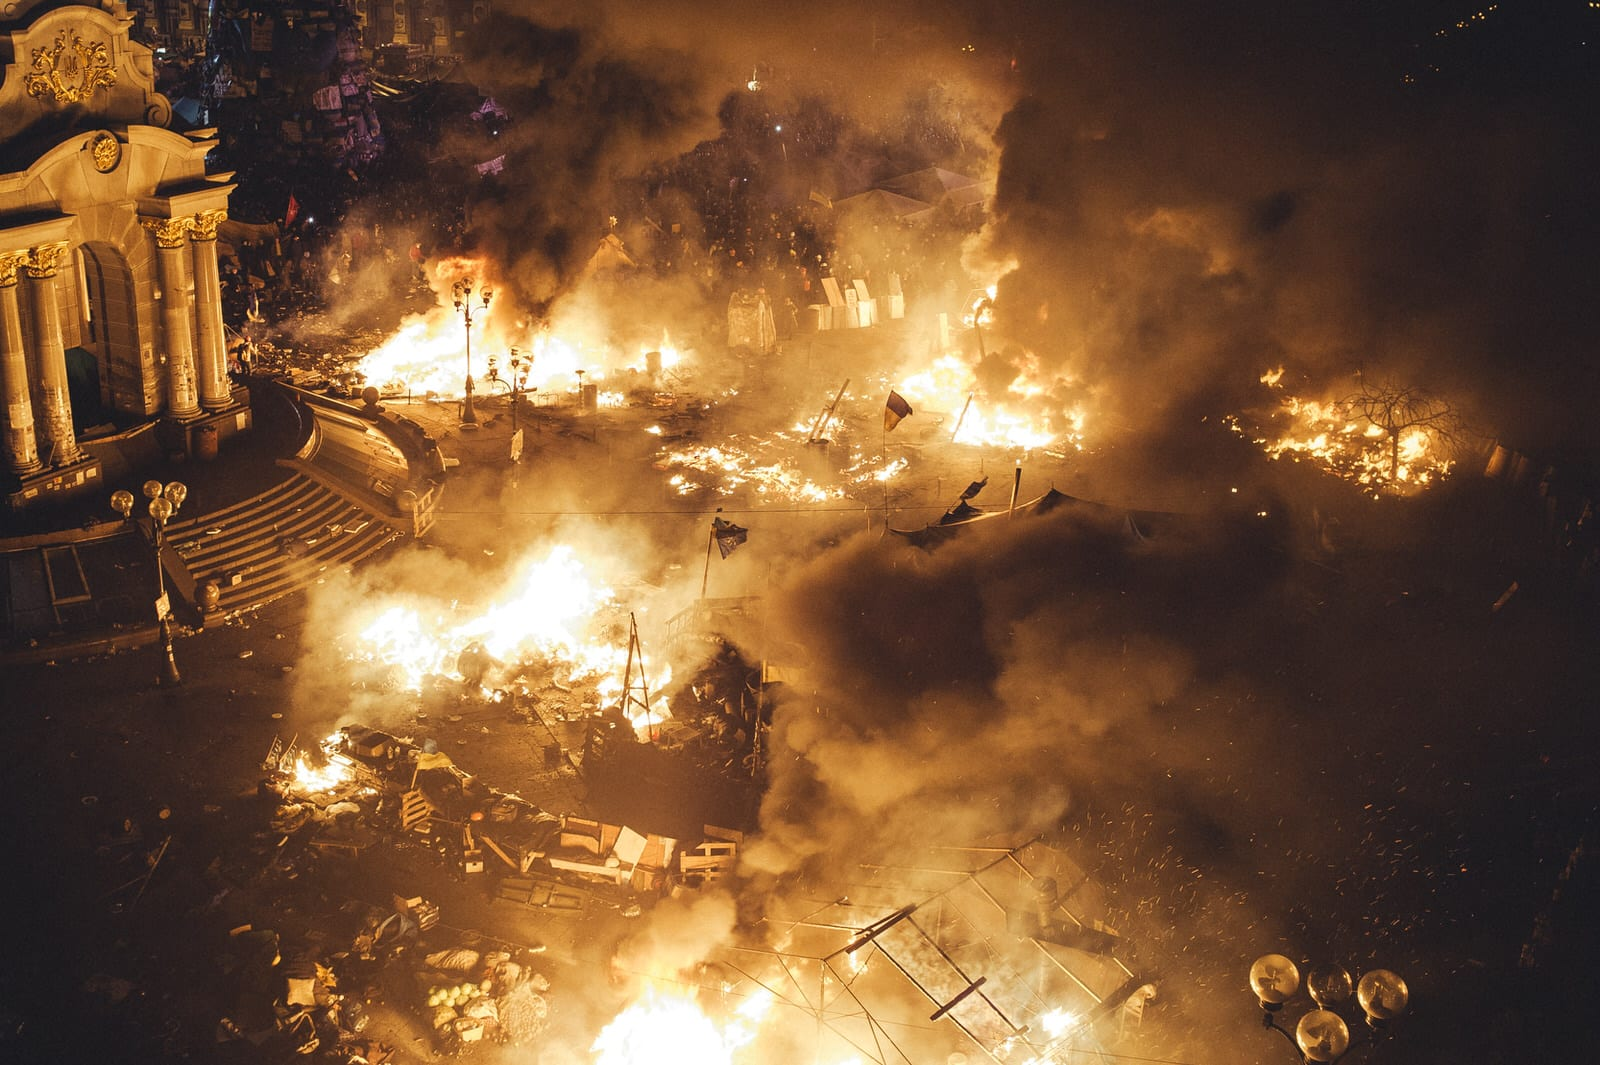 During another assault of the Maidan by police all the tents were burned. 18th February 2014